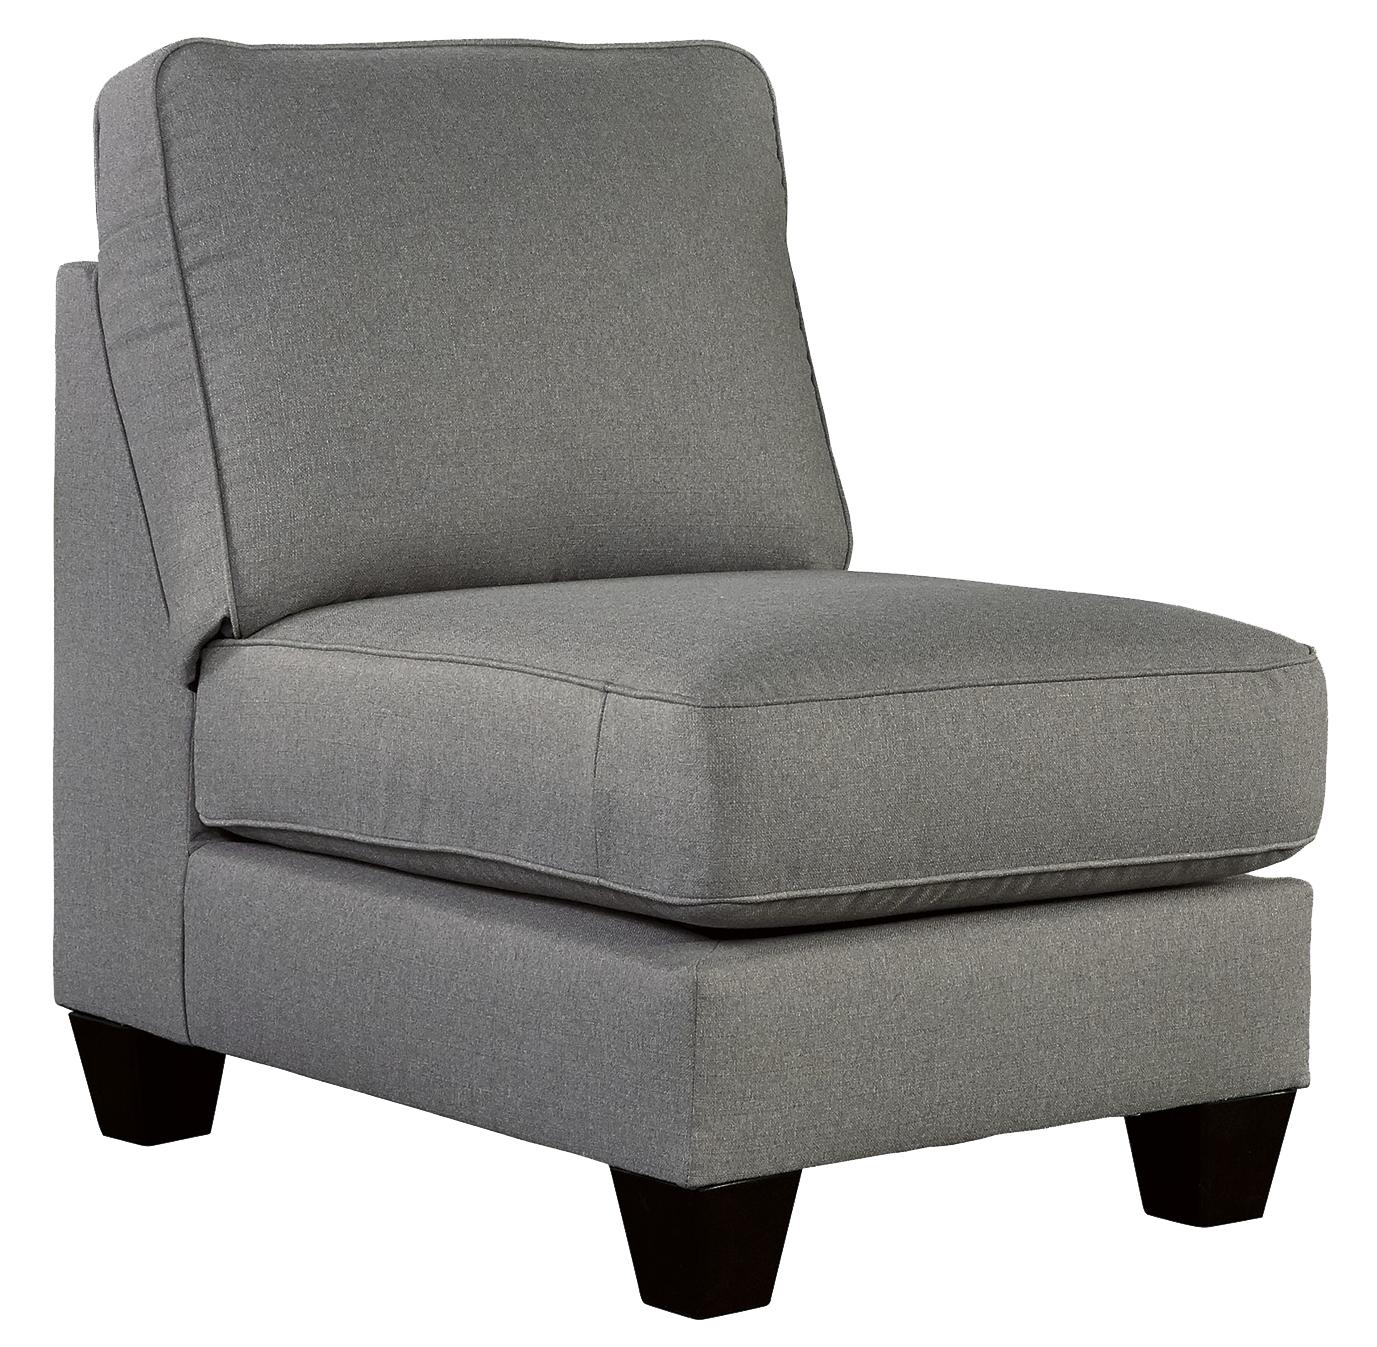 Chamberly - Alloy Armless Chair by Signature Design by Ashley at Coconis Furniture & Mattress 1st